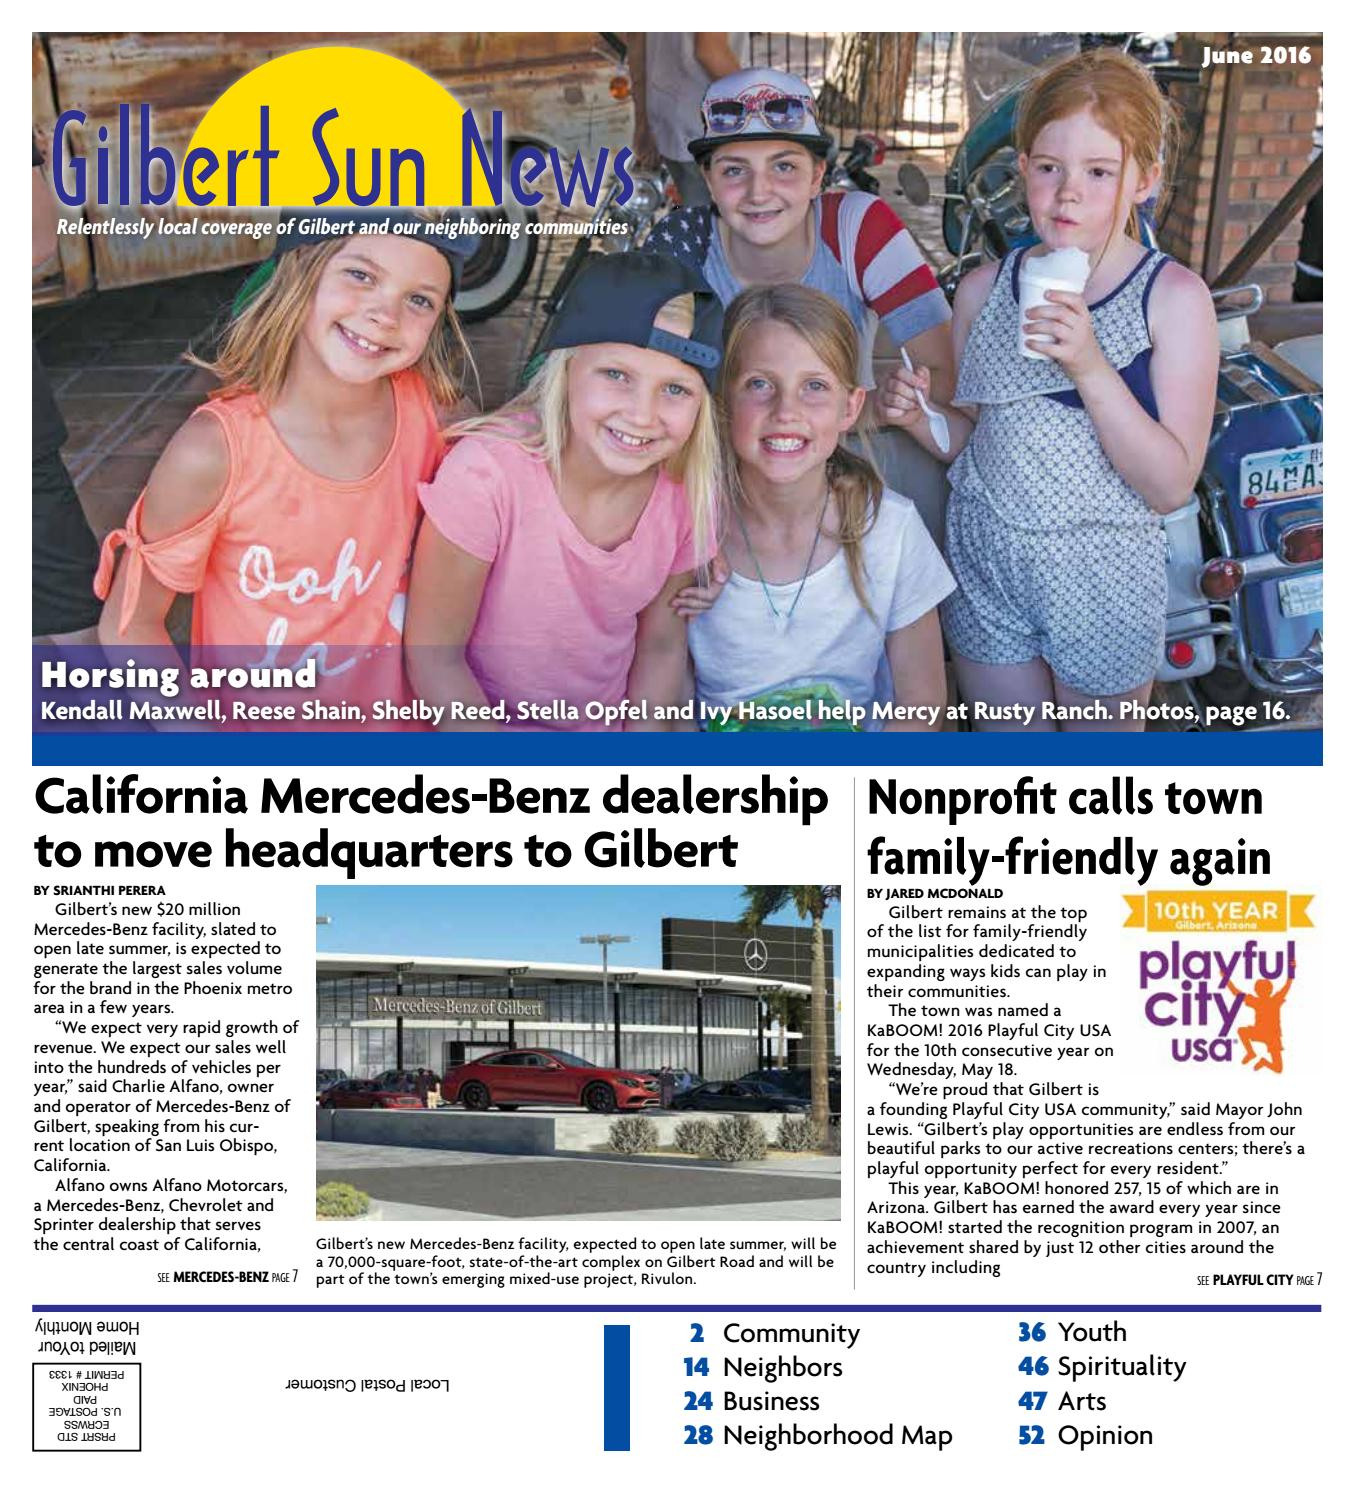 Gilbert sun news june 2016 by times media group issuu for Charlie alfano mercedes benz